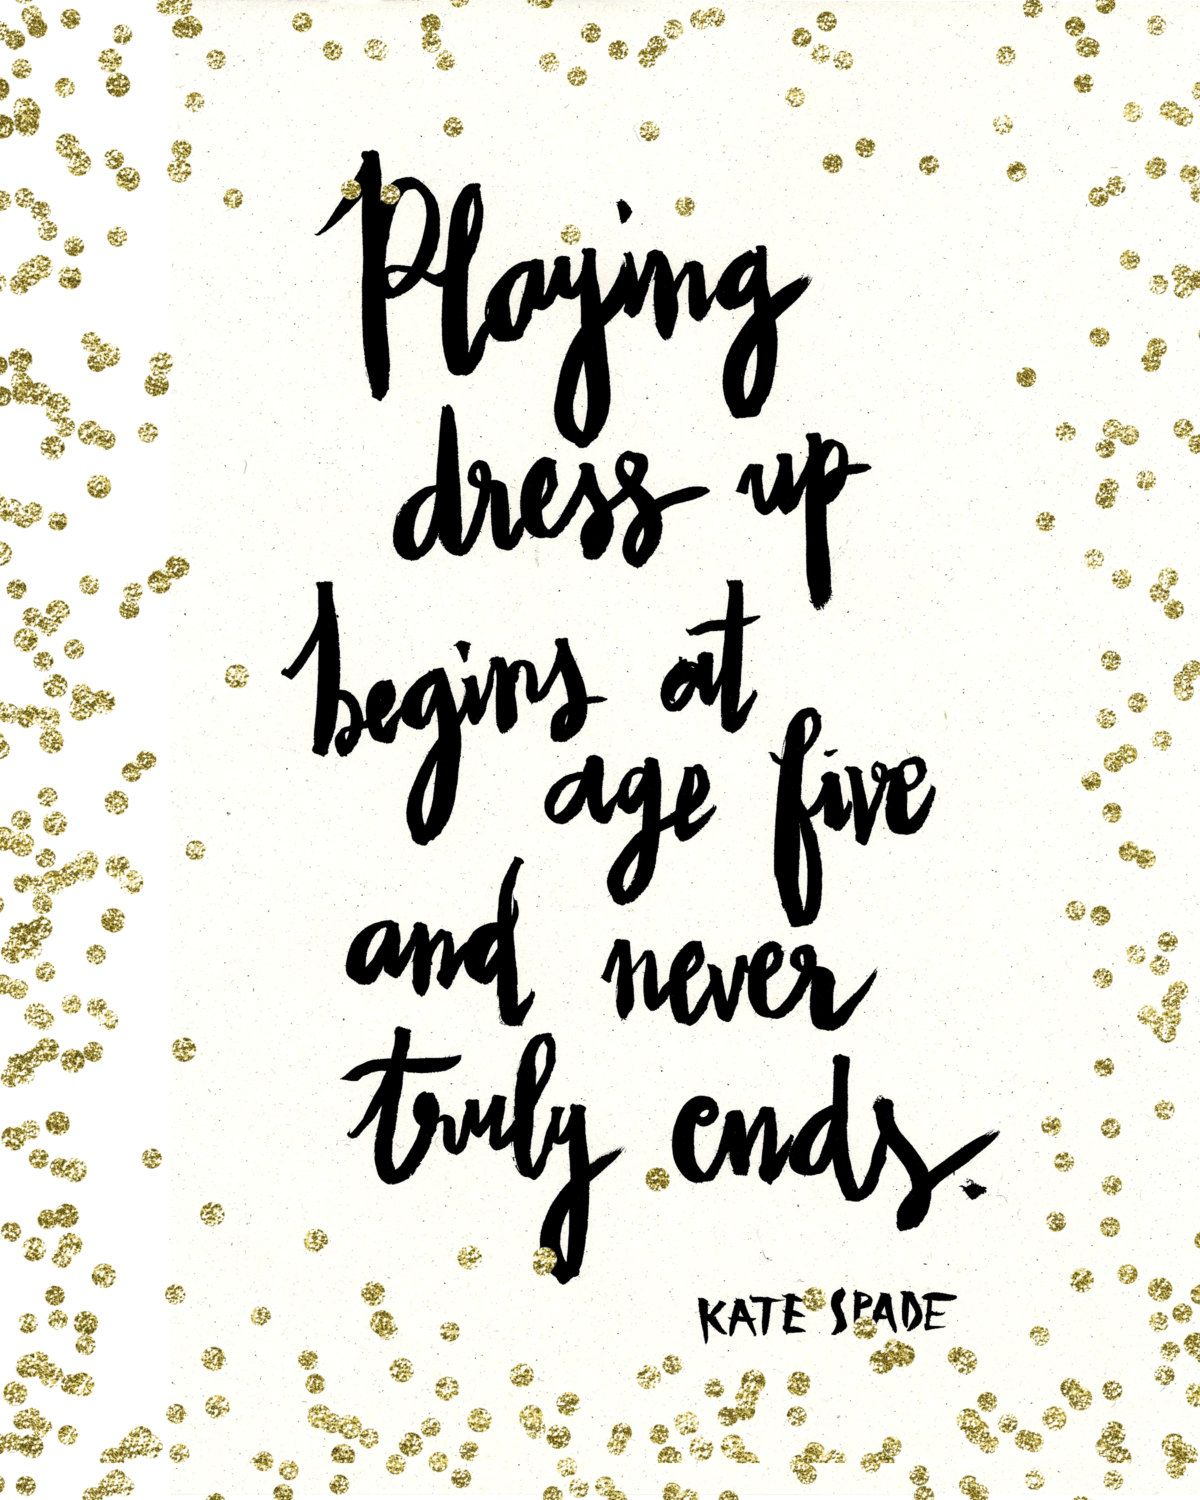 Black dress up quotes - Playing Dress Up Quote Poster Print Black White Glitter Confetti Handwritten Handlettered Nursery Girls Room Handwriting Art Printable Decor